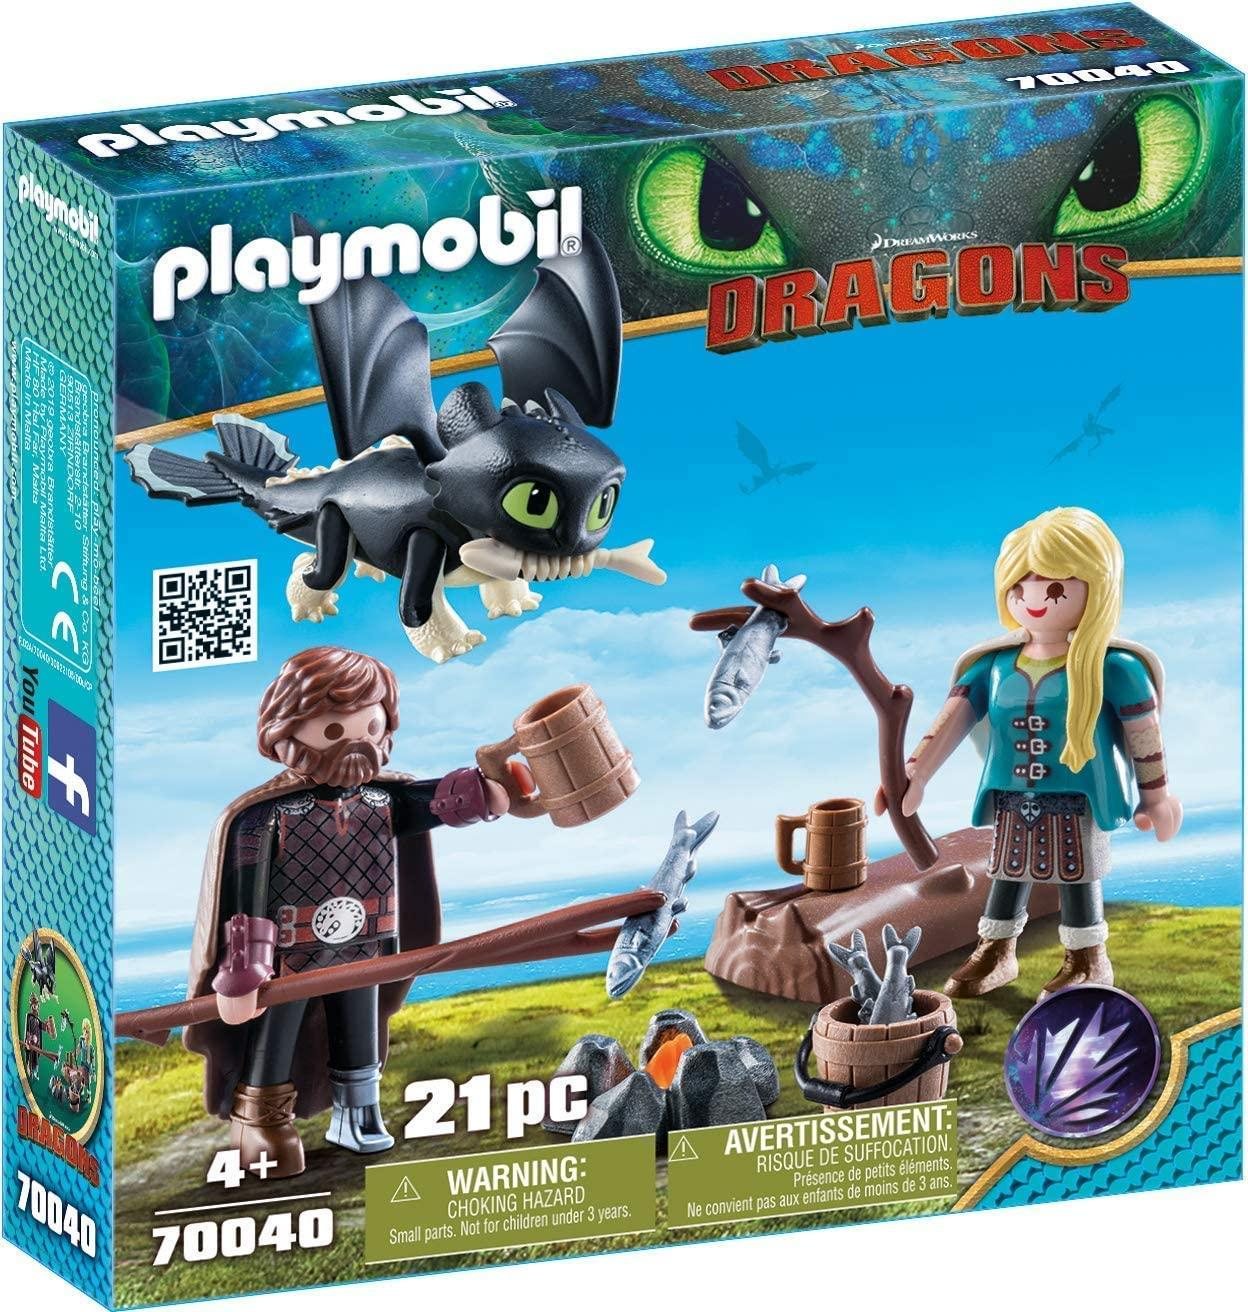 Playmobil 70040 Hiccup And Astrid Playset Toymaster Ballina